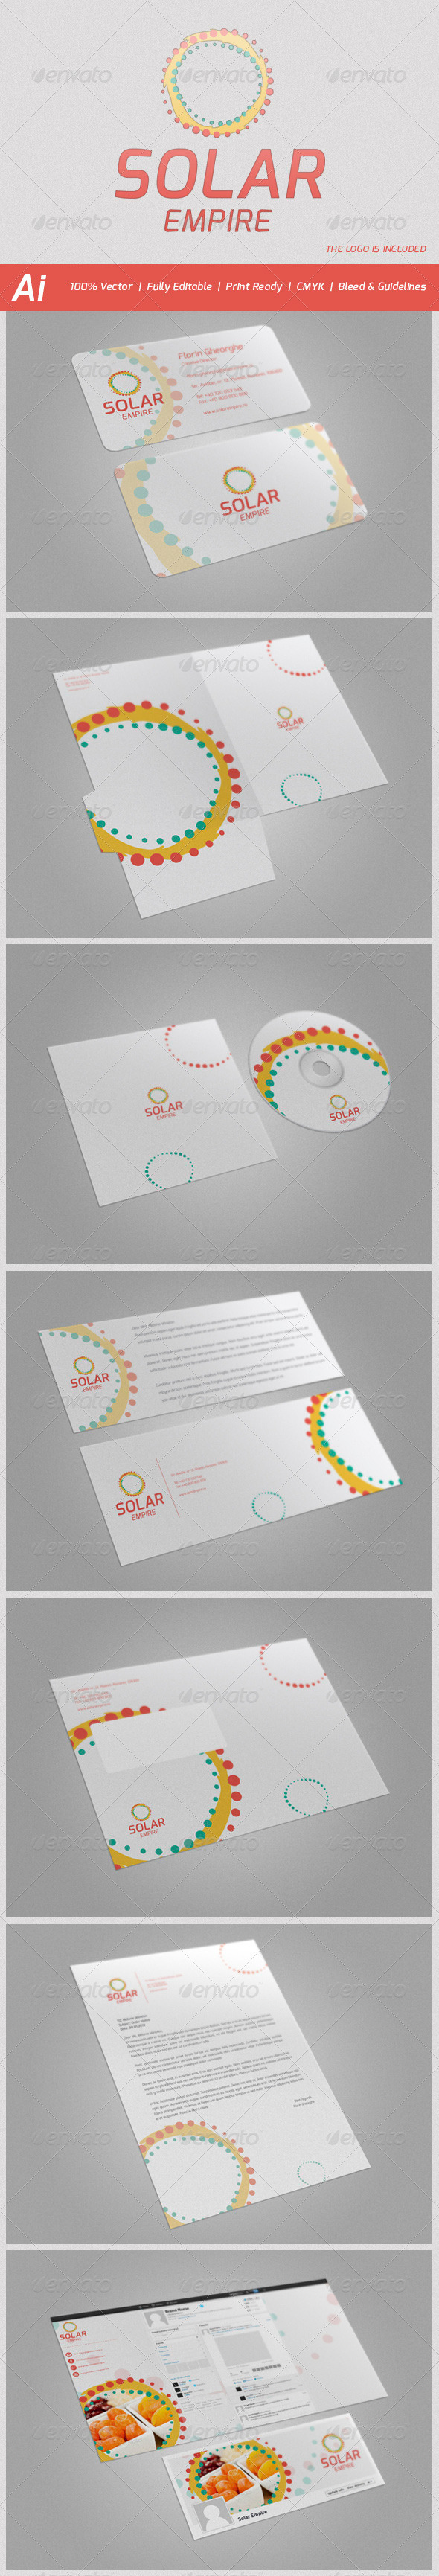 Solar Empire Stationery - Stationery Print Templates